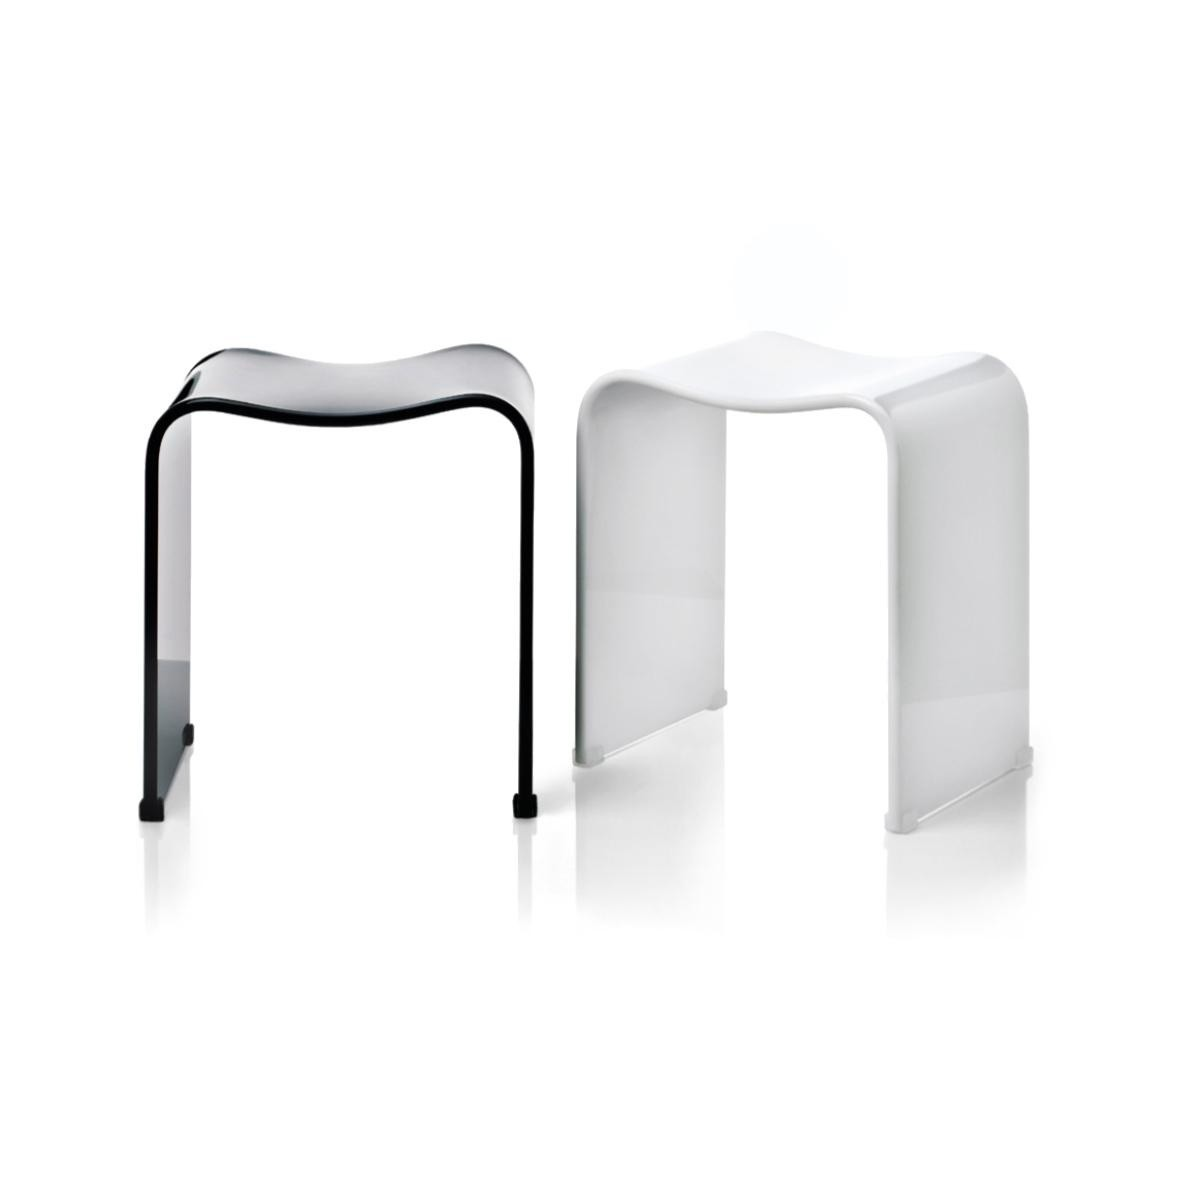 Decor Walther Dw 80 Bath Stool Ambientedirect